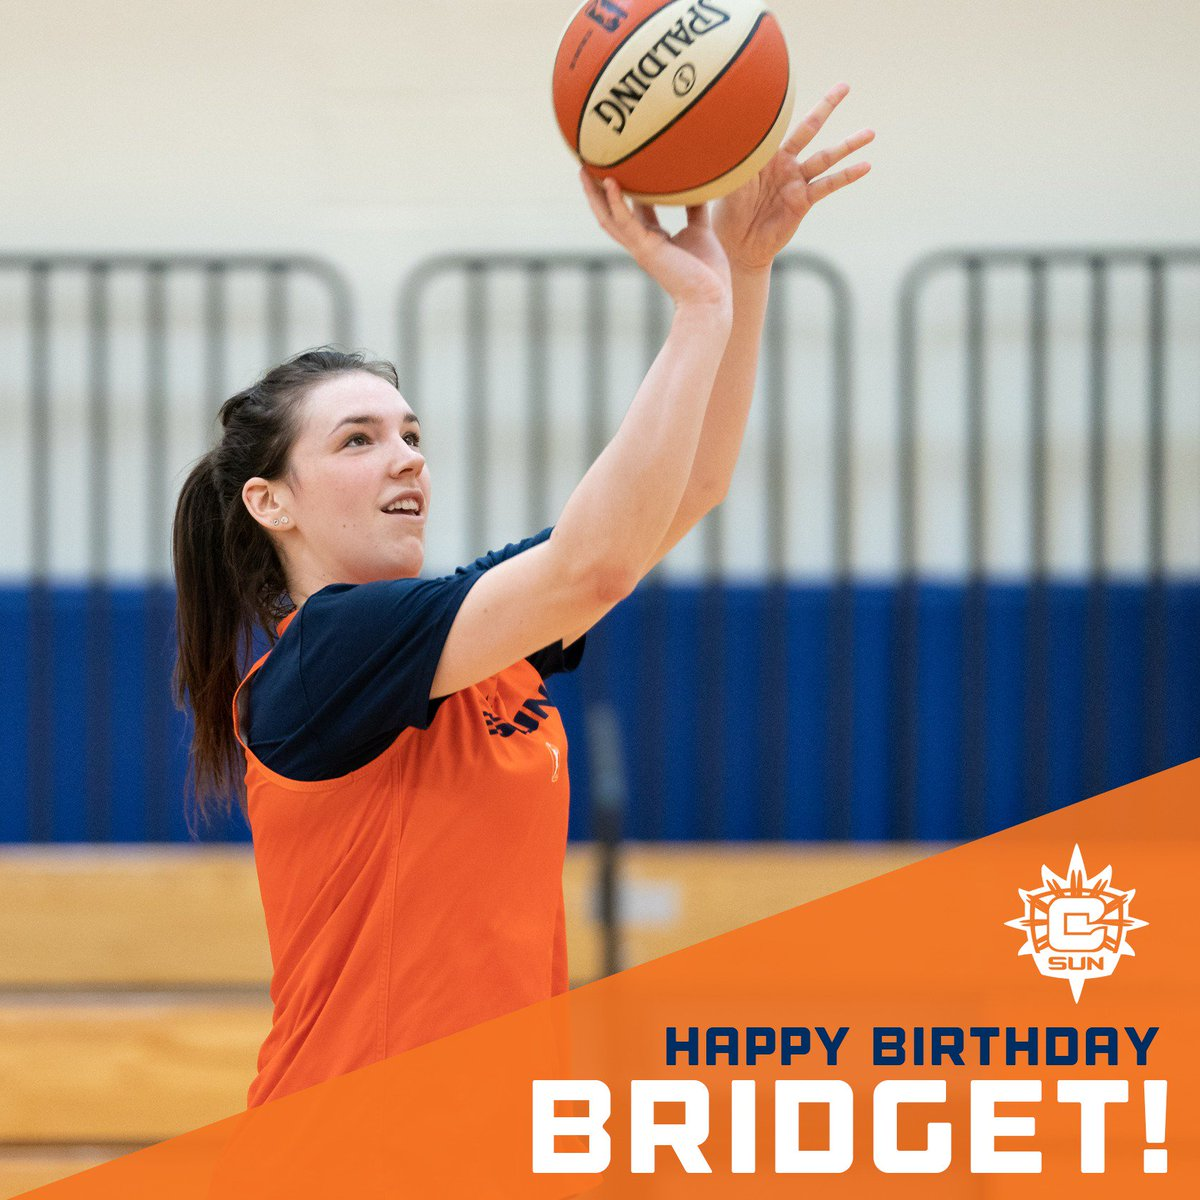 Join us in wishing @bridgecarleton a very happy birthday!🎂🎈🥳